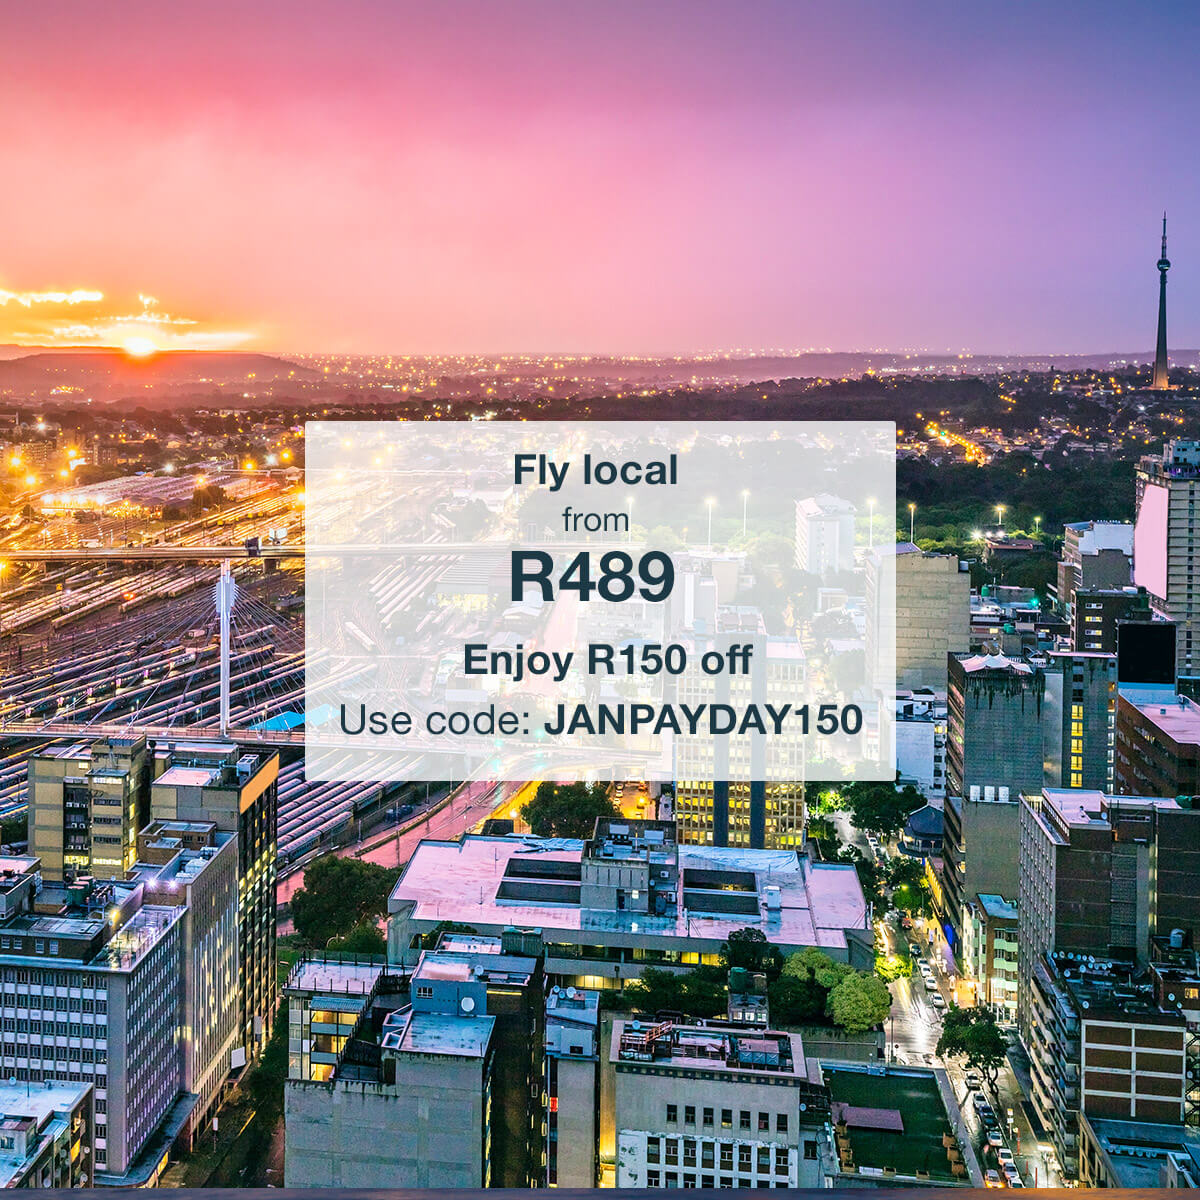 Fly Local from R489